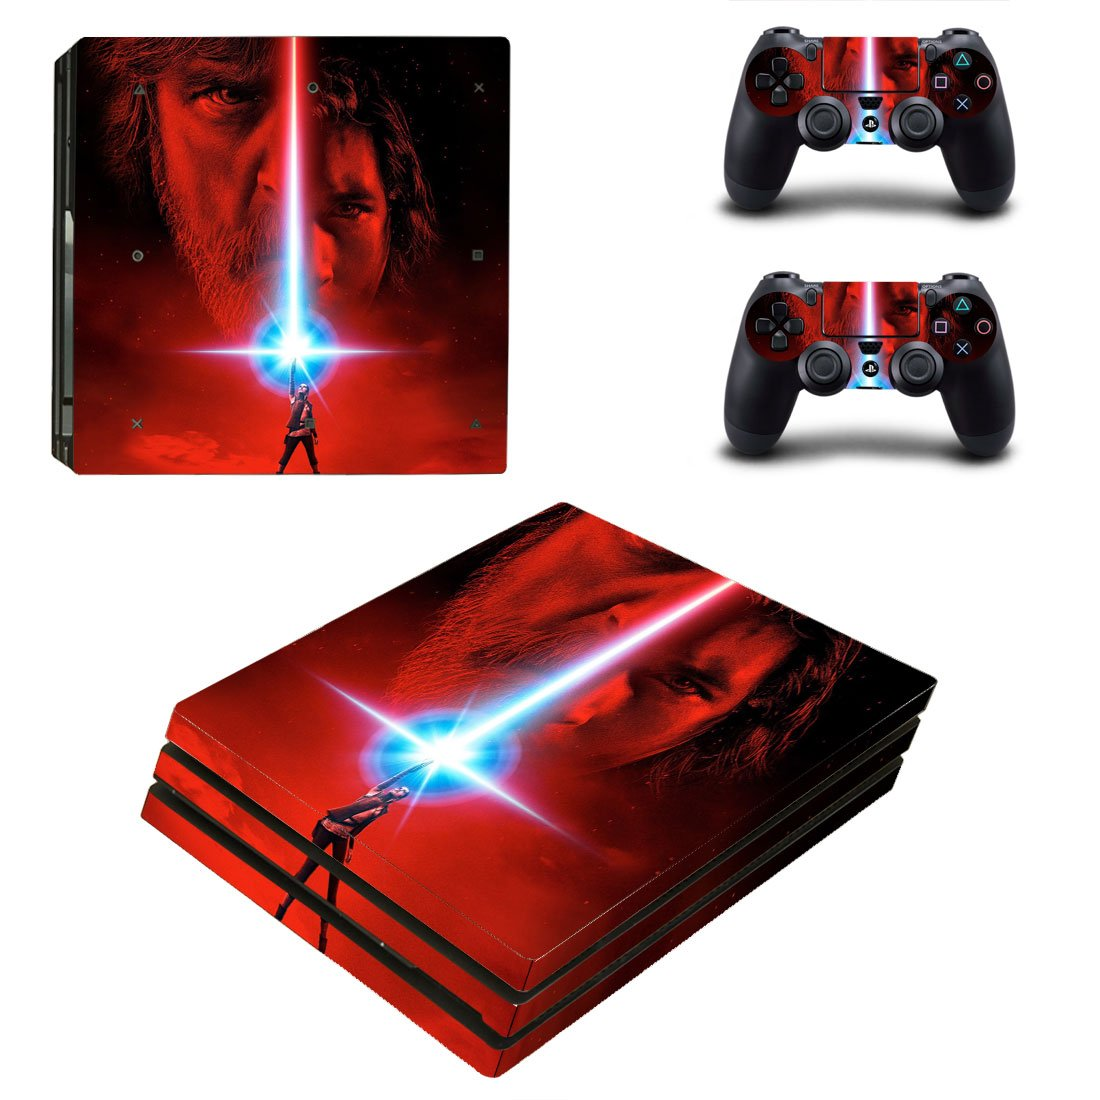 Ps4 Pro Star Wars The Last Jedi Consol Buy Online In Canada At Desertcart